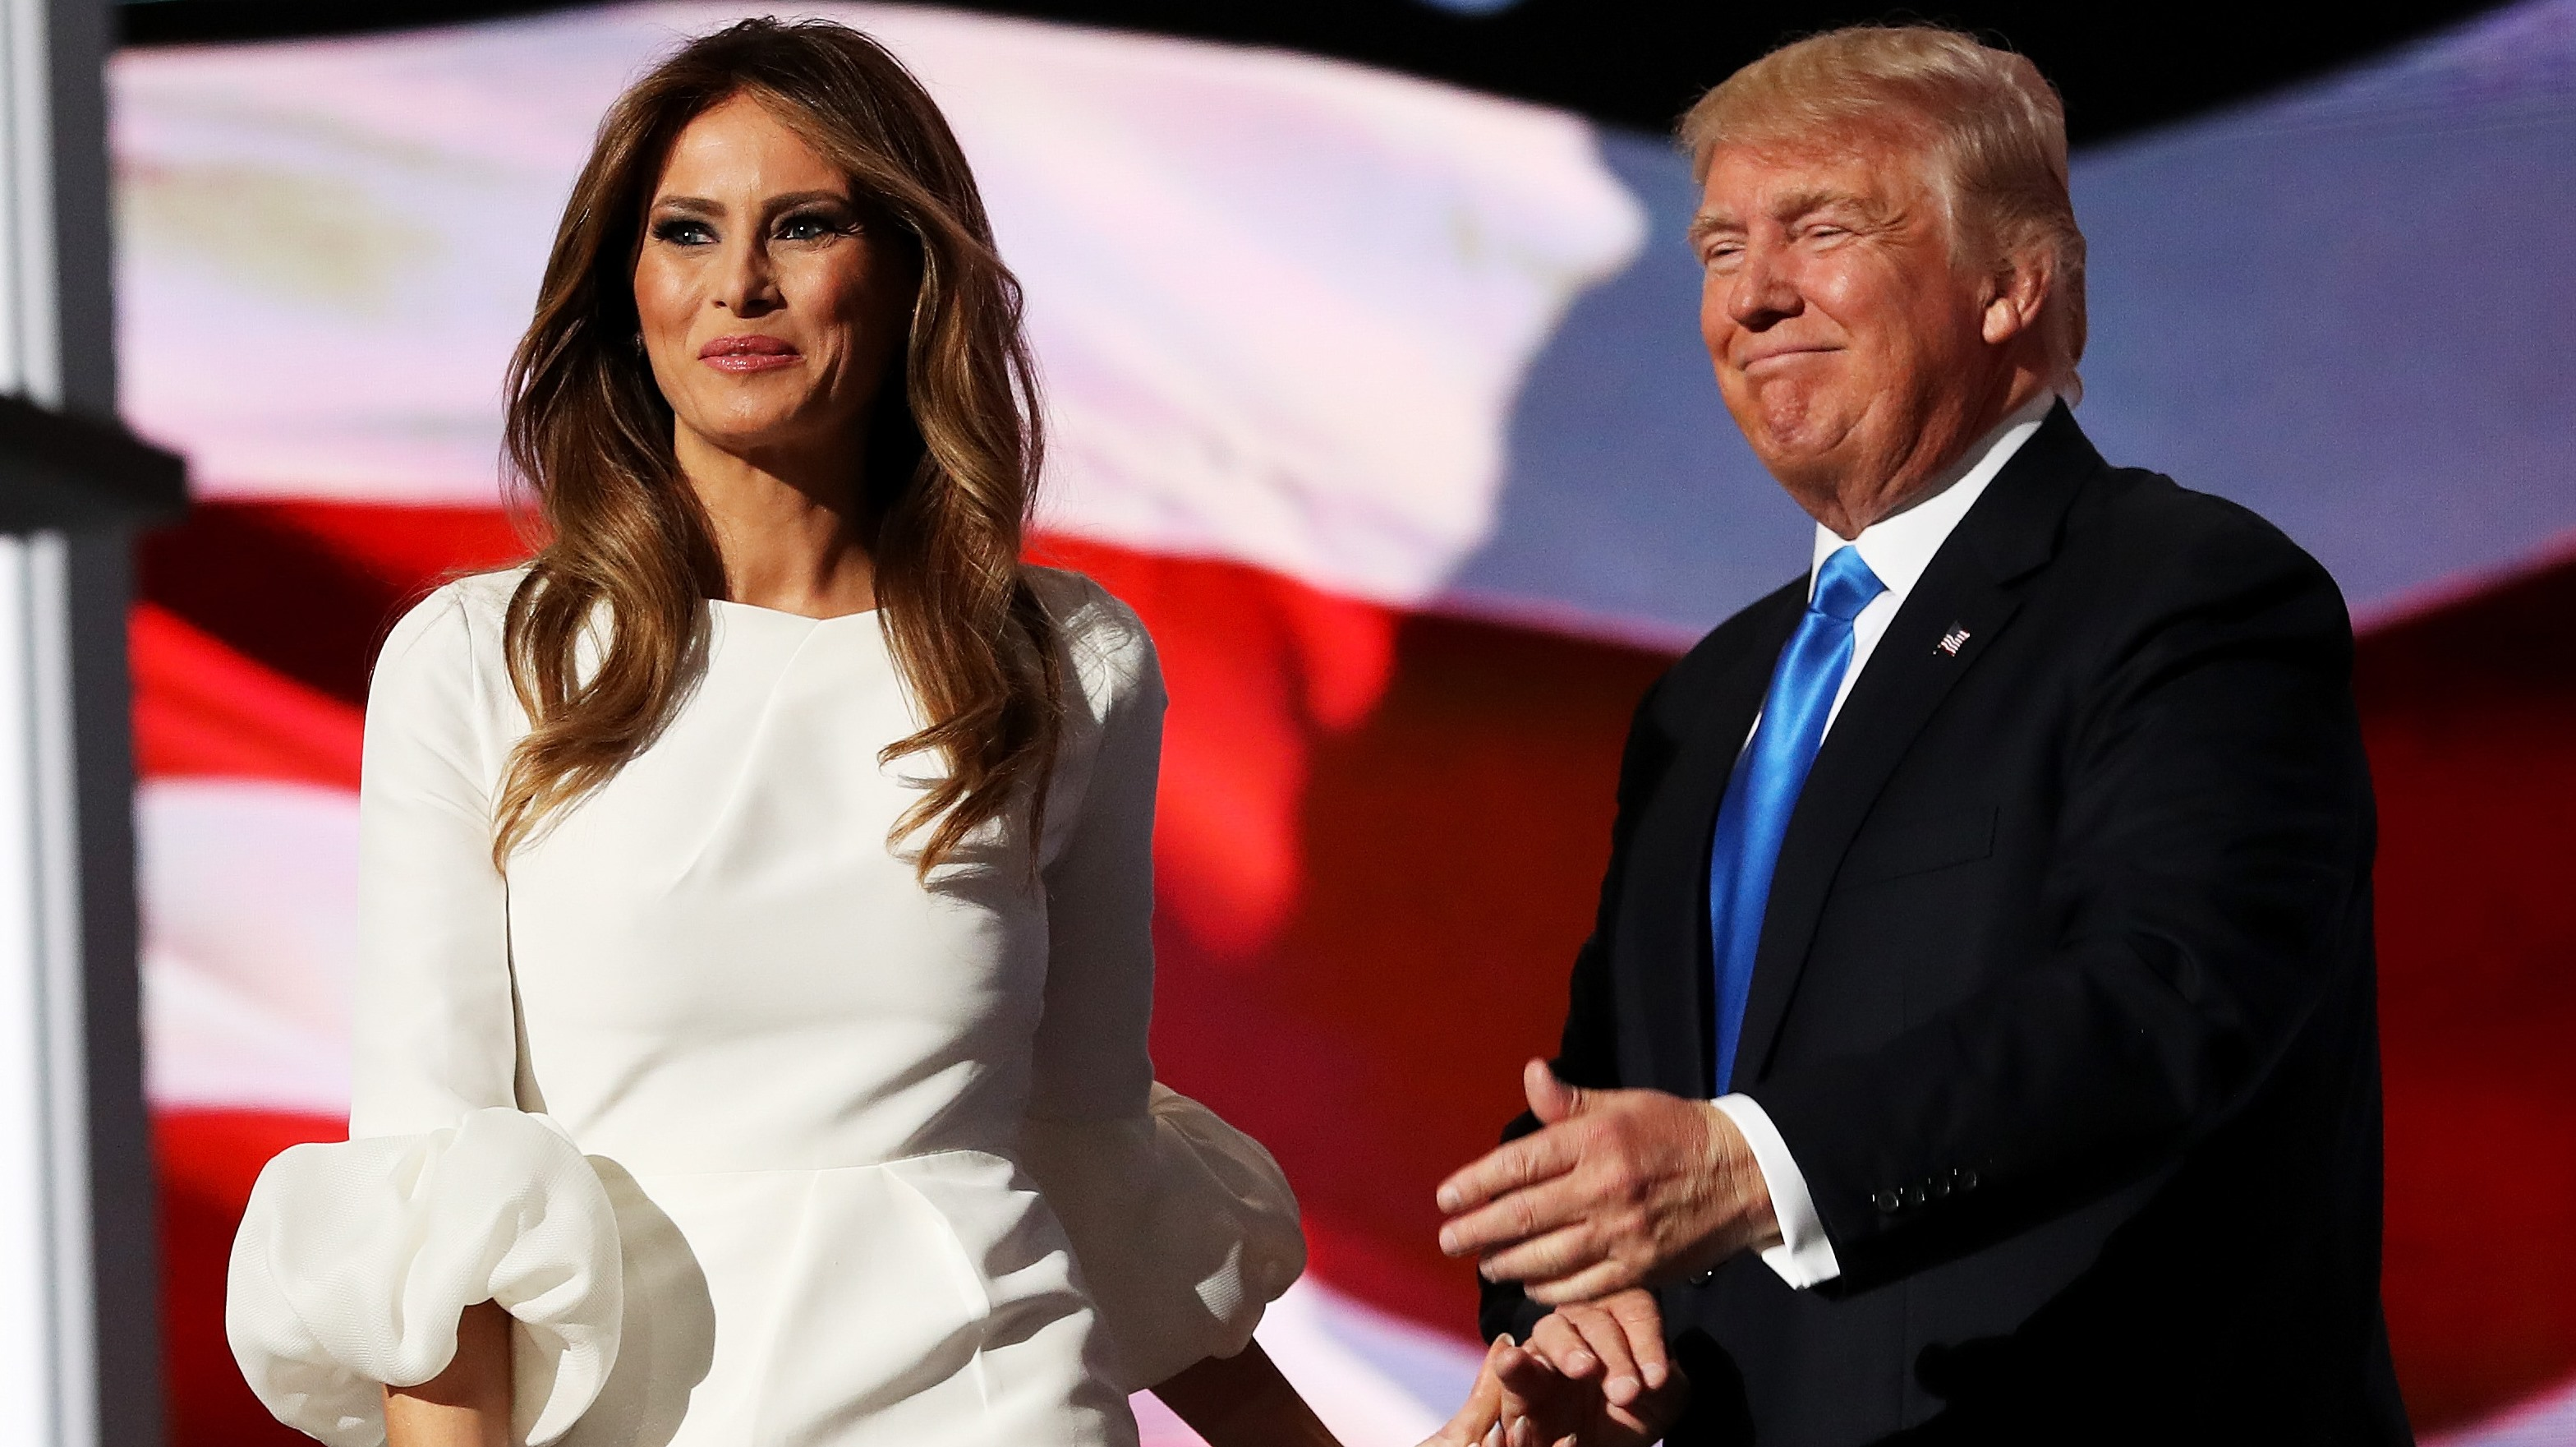 Presumptive Republican presidential nominee Donald Trump introduces his wife Melania on the first day of the Republican National Convention Monday at the Quicken Loans Arena in Cleveland.  (Getty Images)